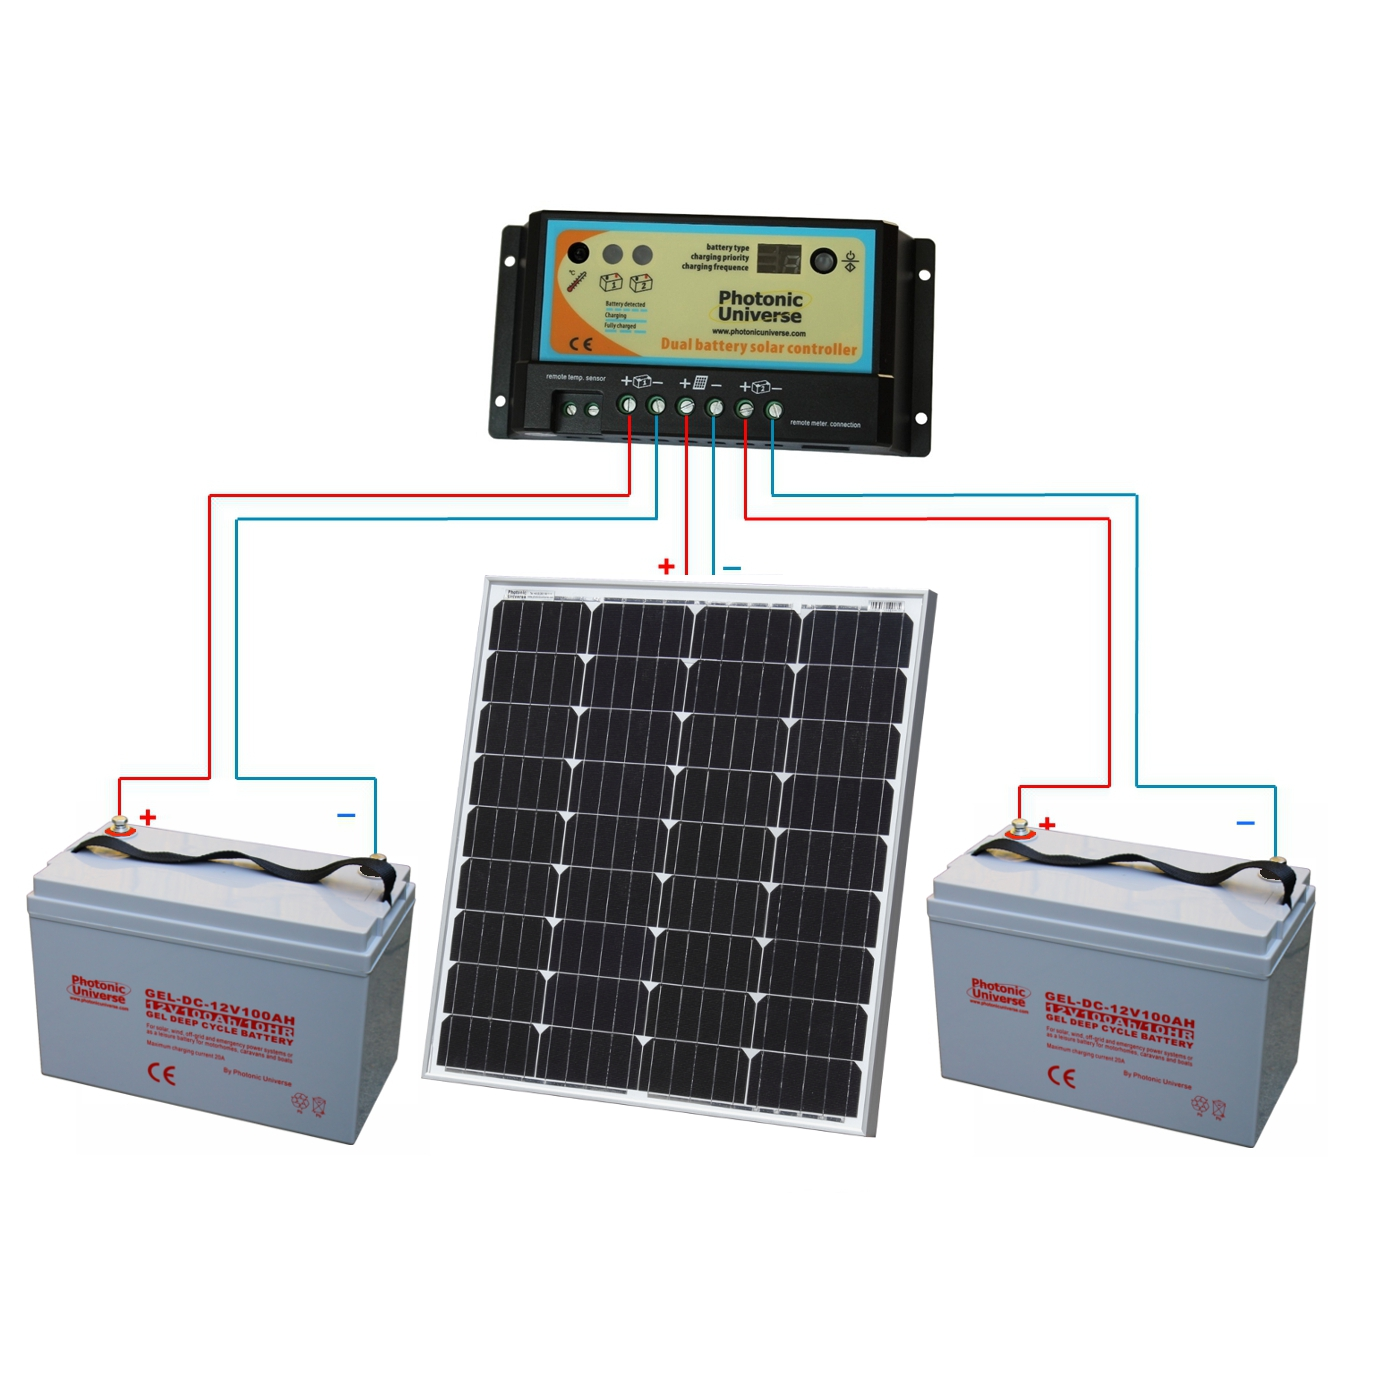 12v Solar Panel Wiring Diagram 30 Images Wire Boats 80w Db Kit Connection Scheme Panels Charging Kits For Caravans Motorhomes